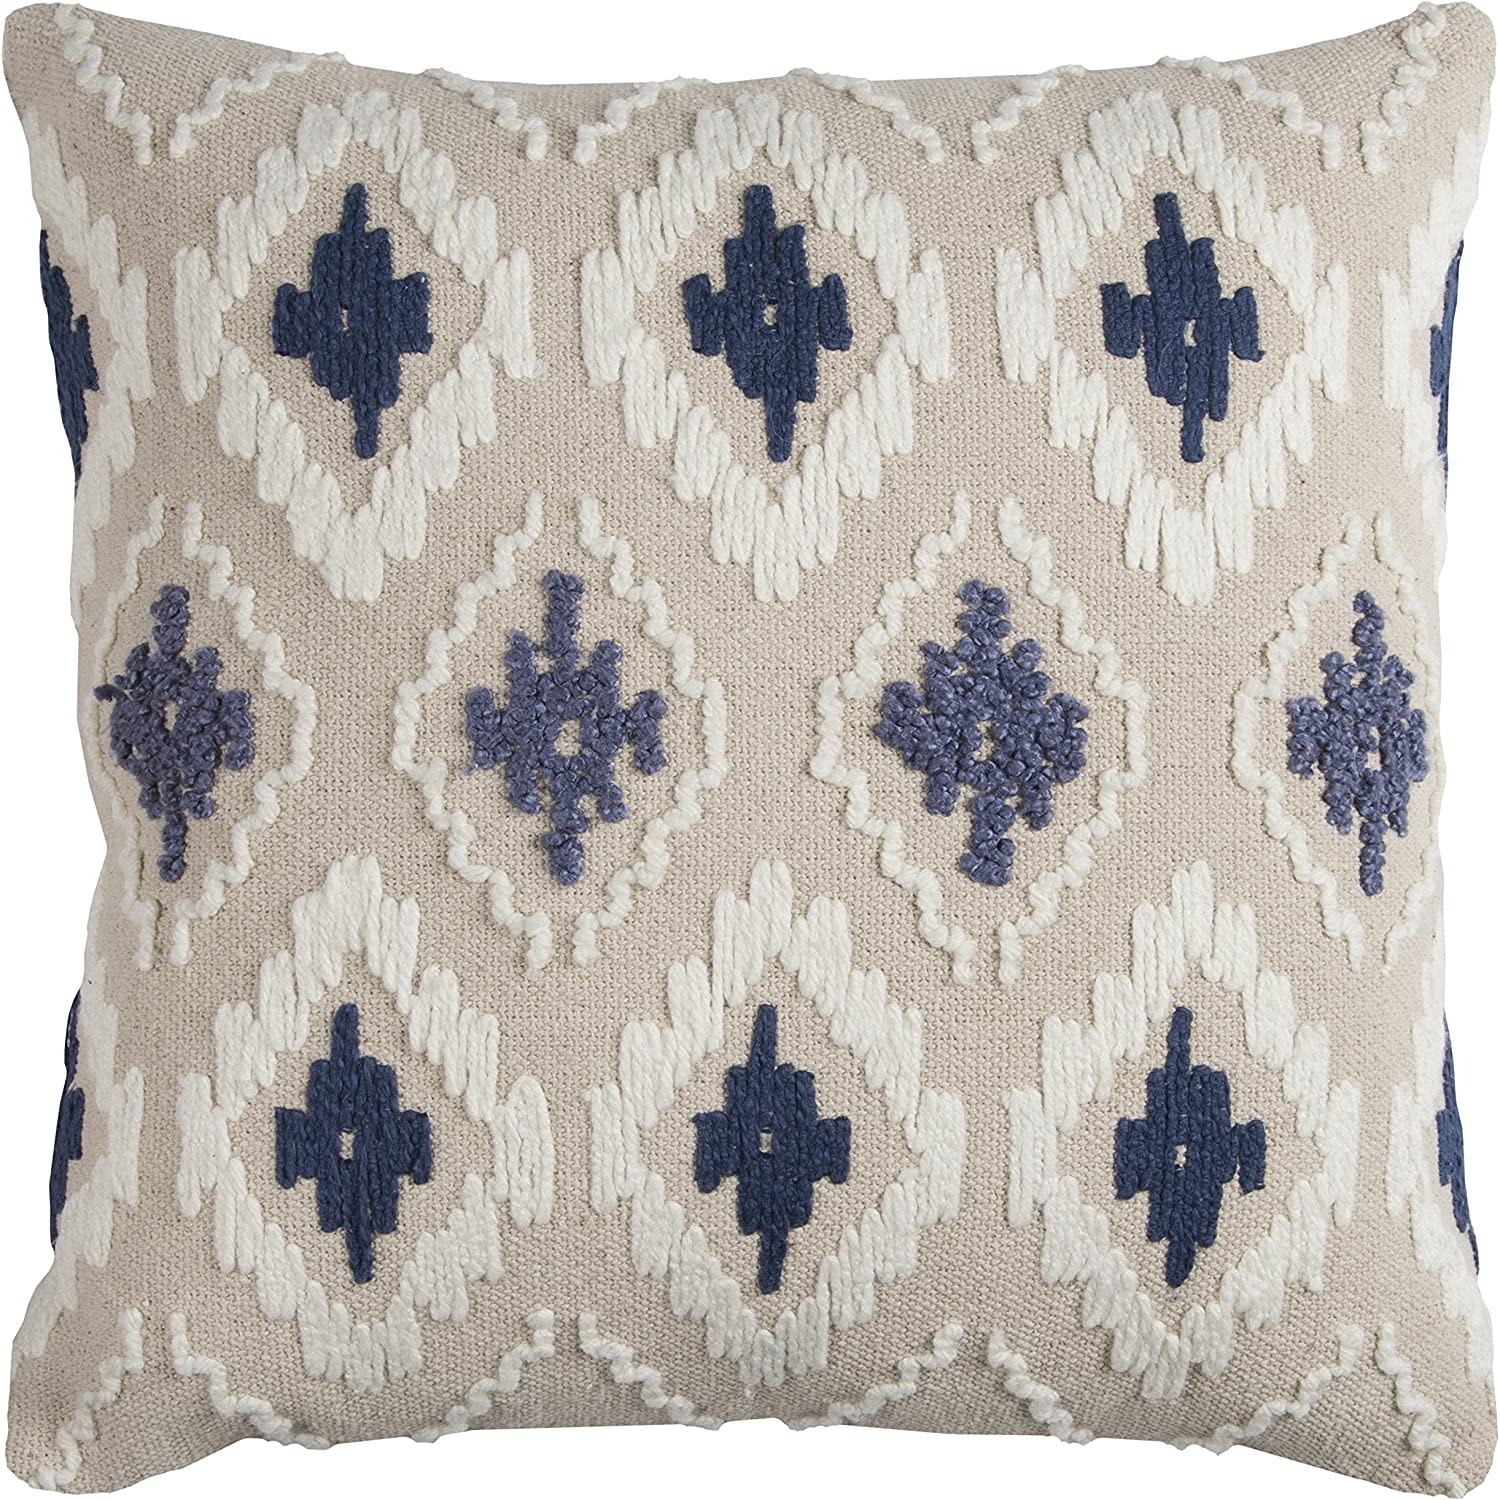 "Rizzy Home T11762 Decorative Pillow, 20""X20"", Blue/White/Neutral"